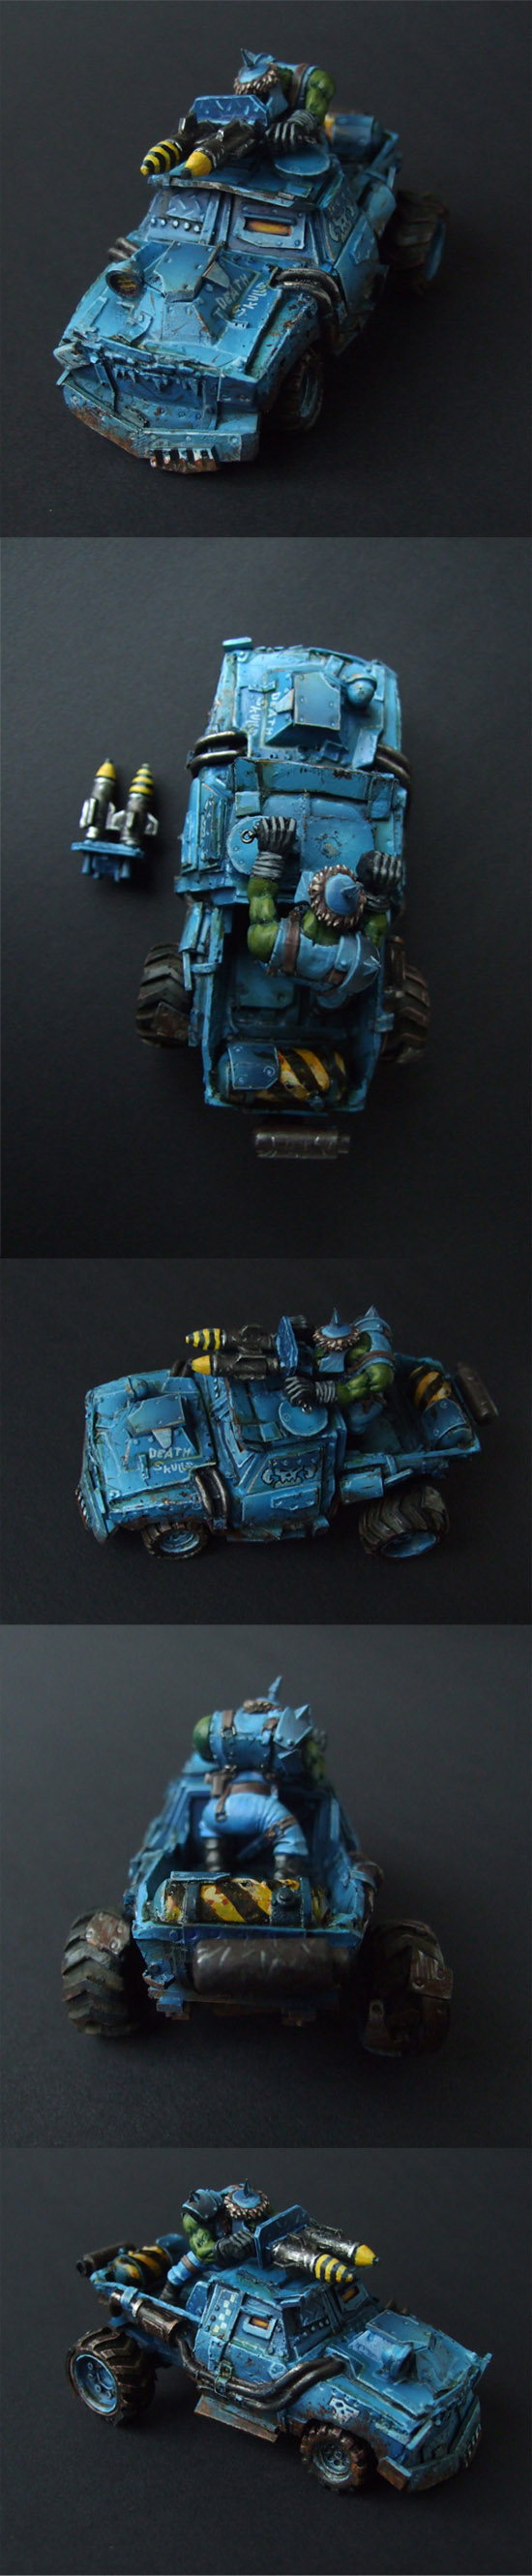 war buggy fighter truck Orc ork vechicle unique painted